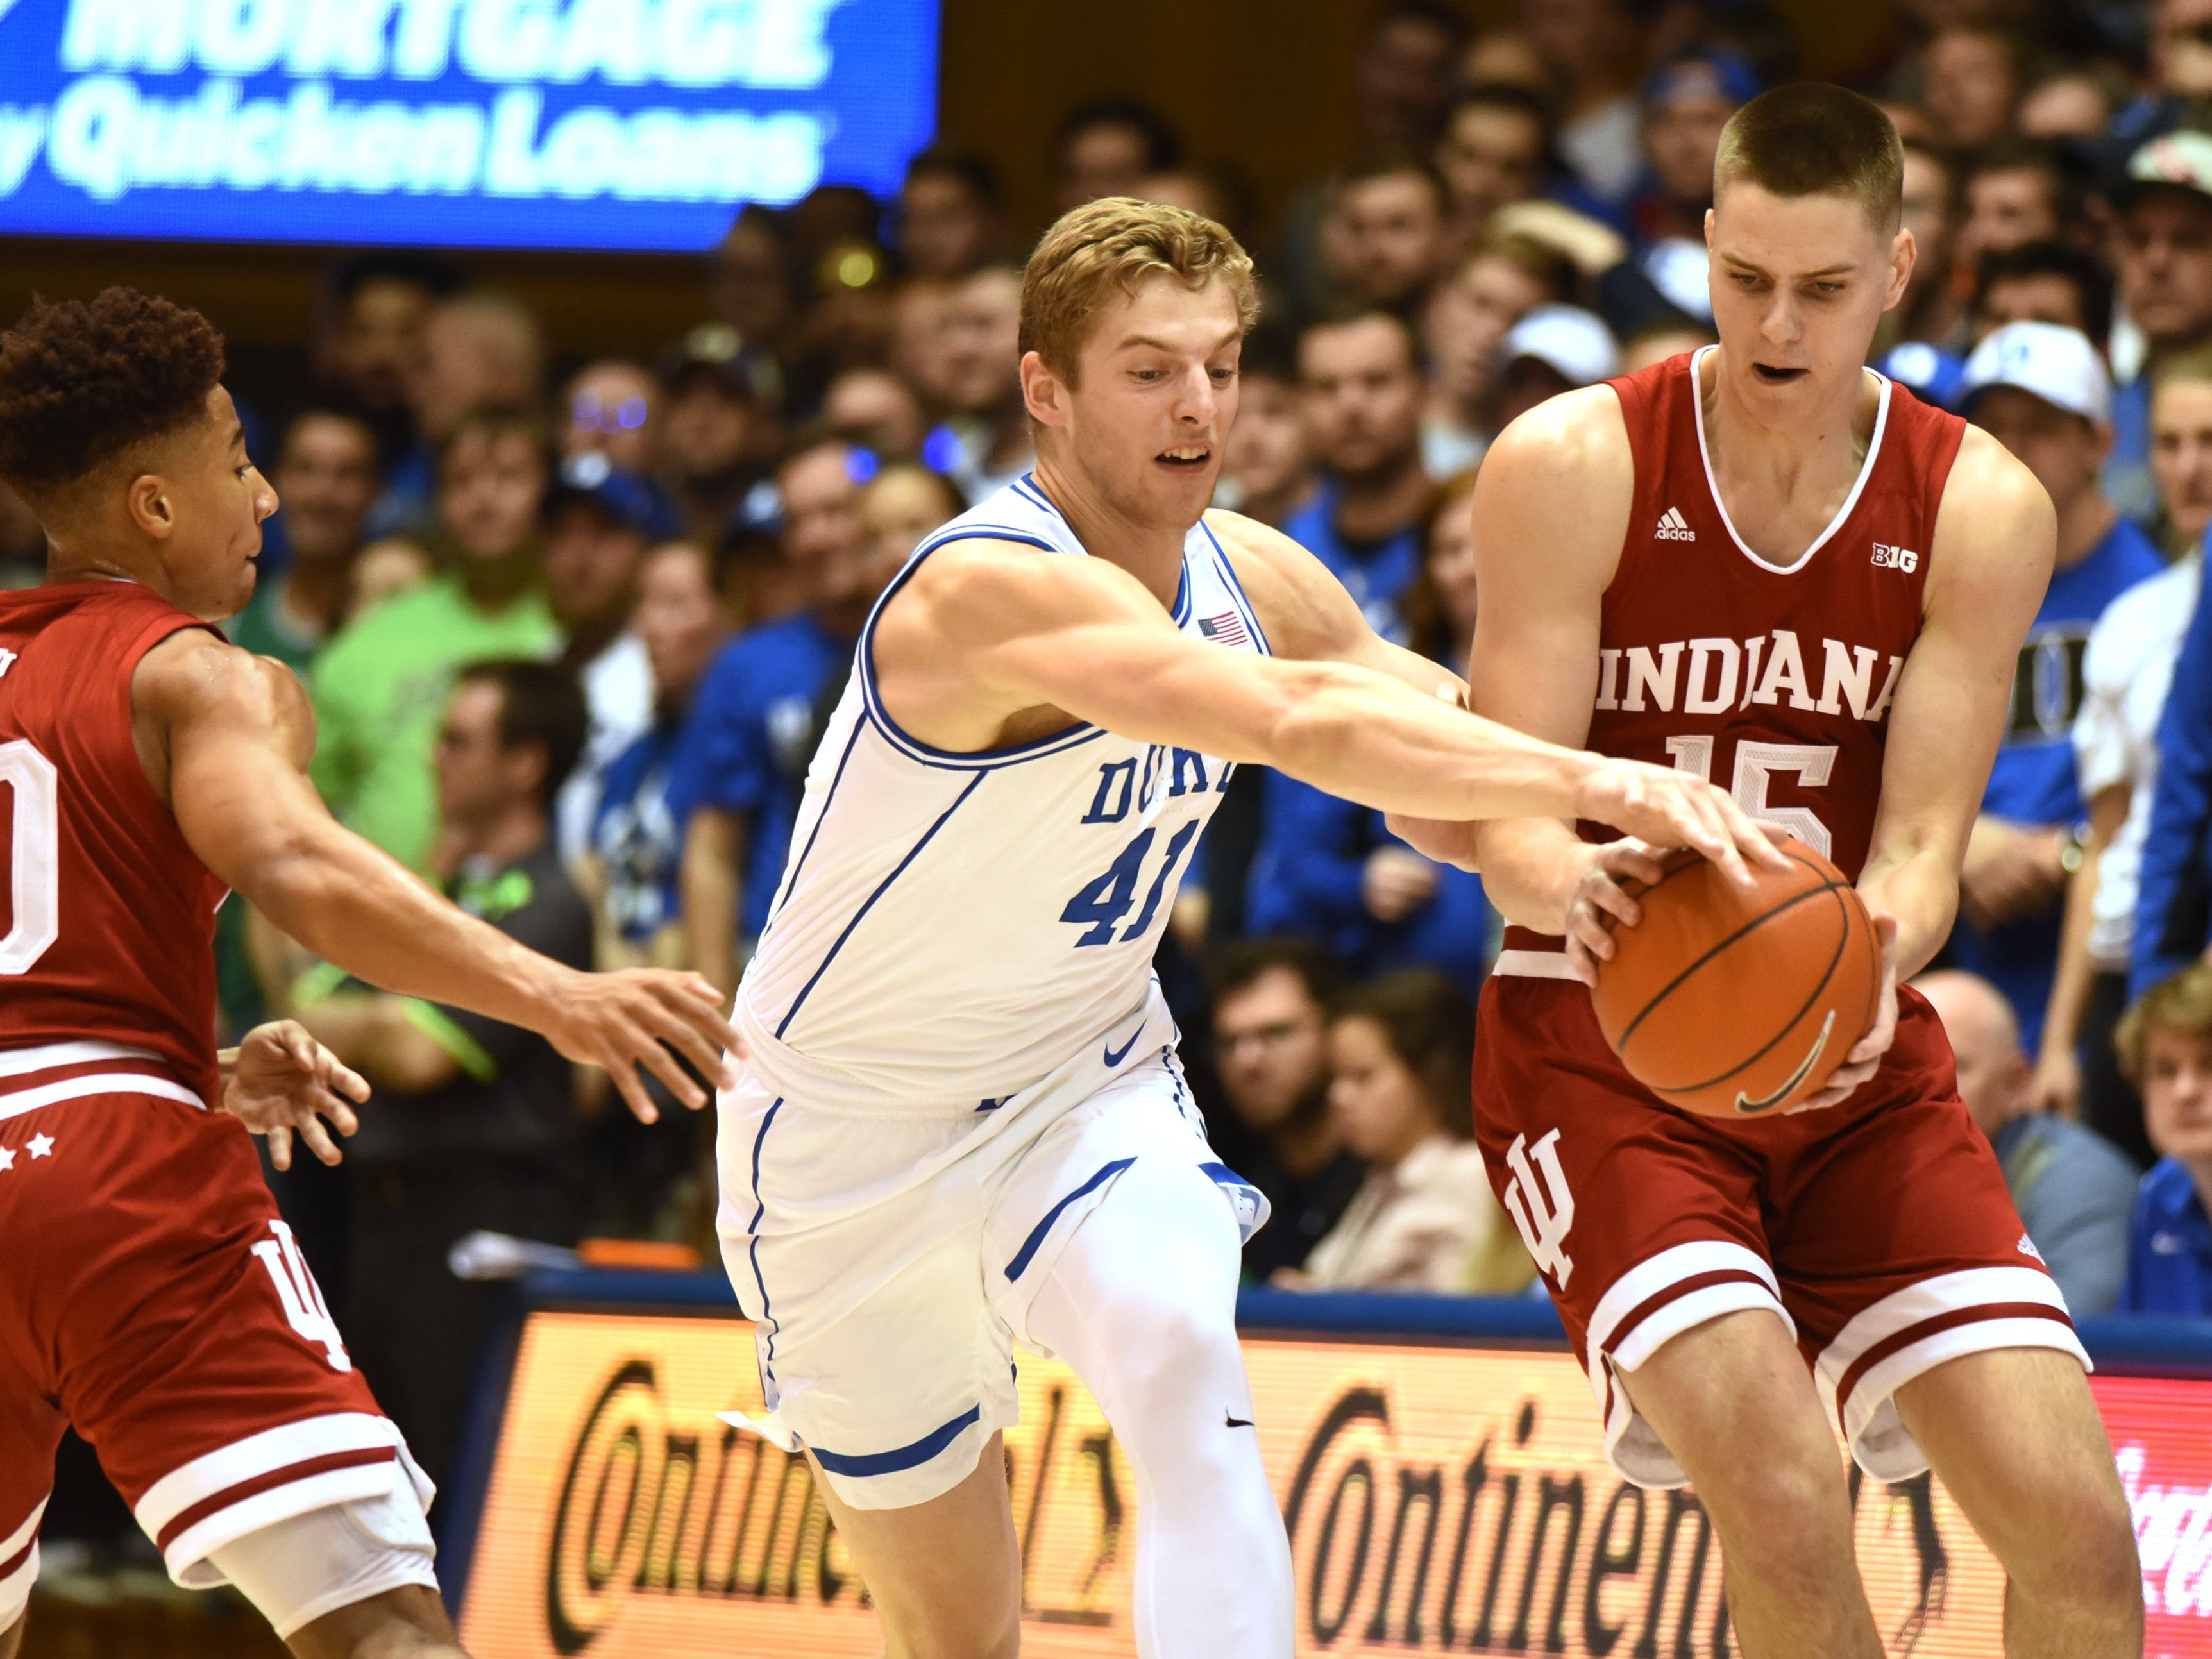 Nov 27, 2018; Durham, NC, USA; Duke Blue Devils forward Jack White (41) attempts to steal the ball in front of Indiana Hoosiers forward Evan Fitzner (55) during the first half at Cameron Indoor Stadium.